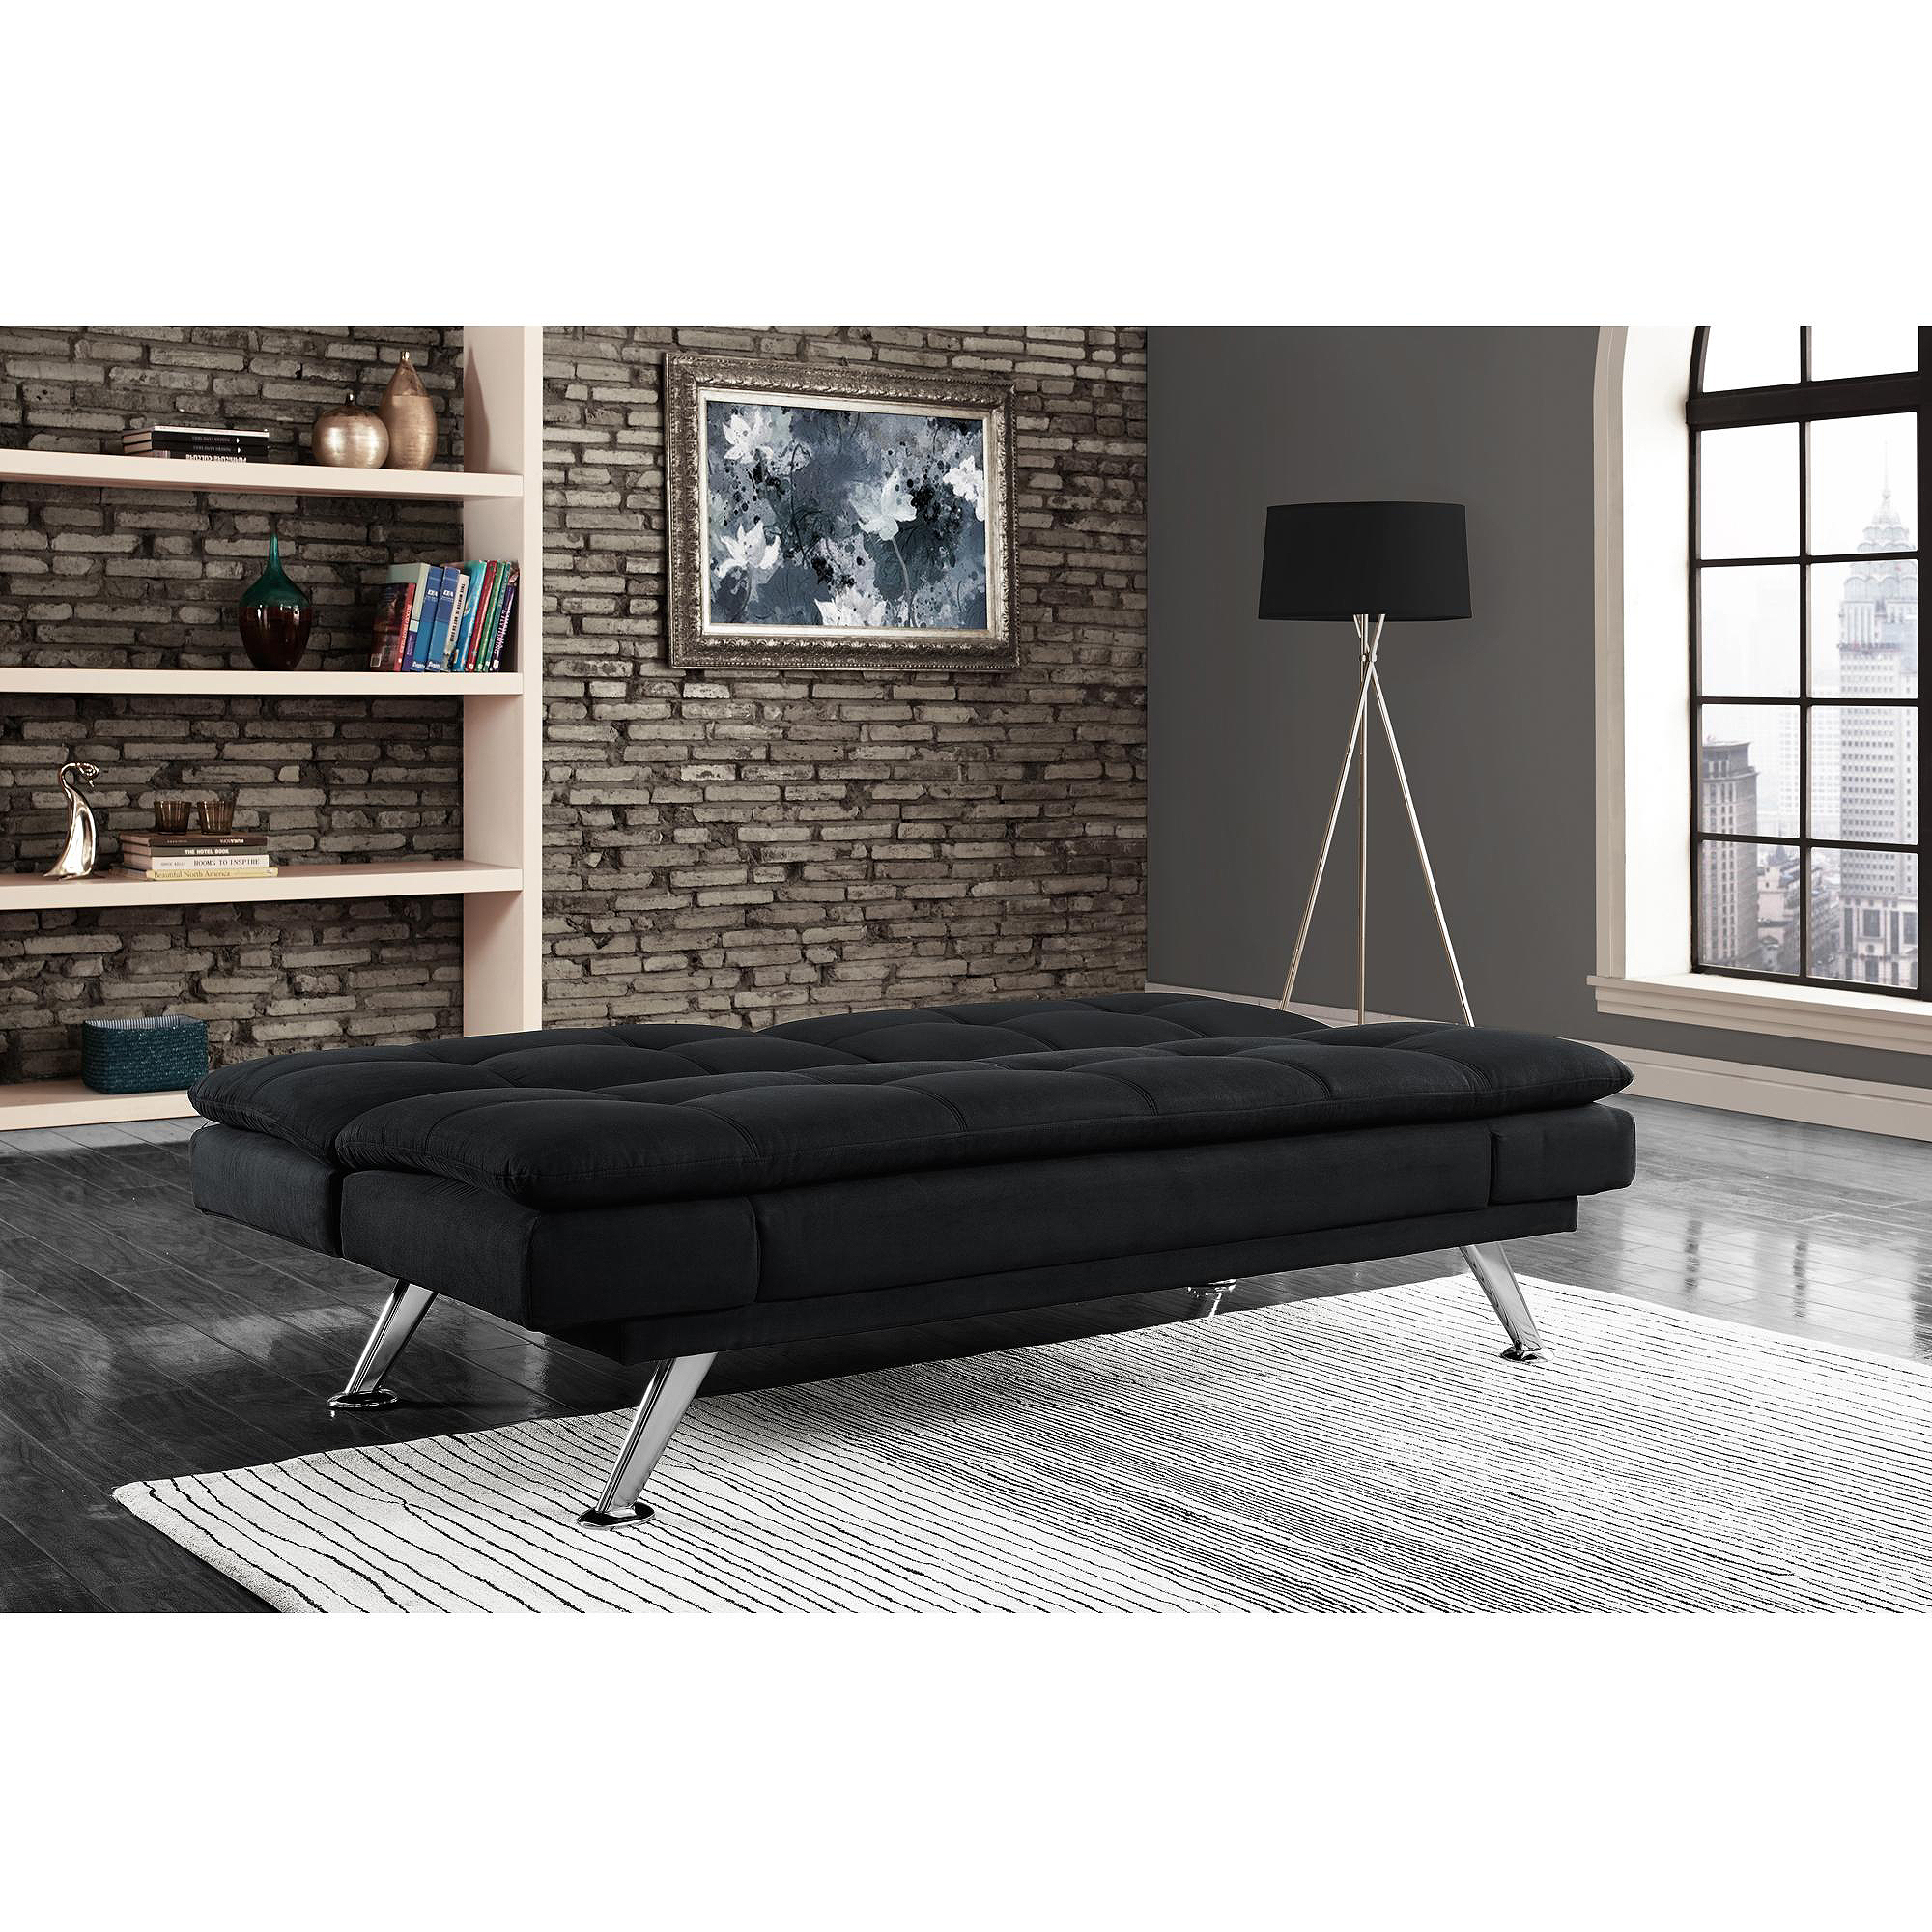 Premium Bailey Pillow Top Futon, Black   Walmart.com